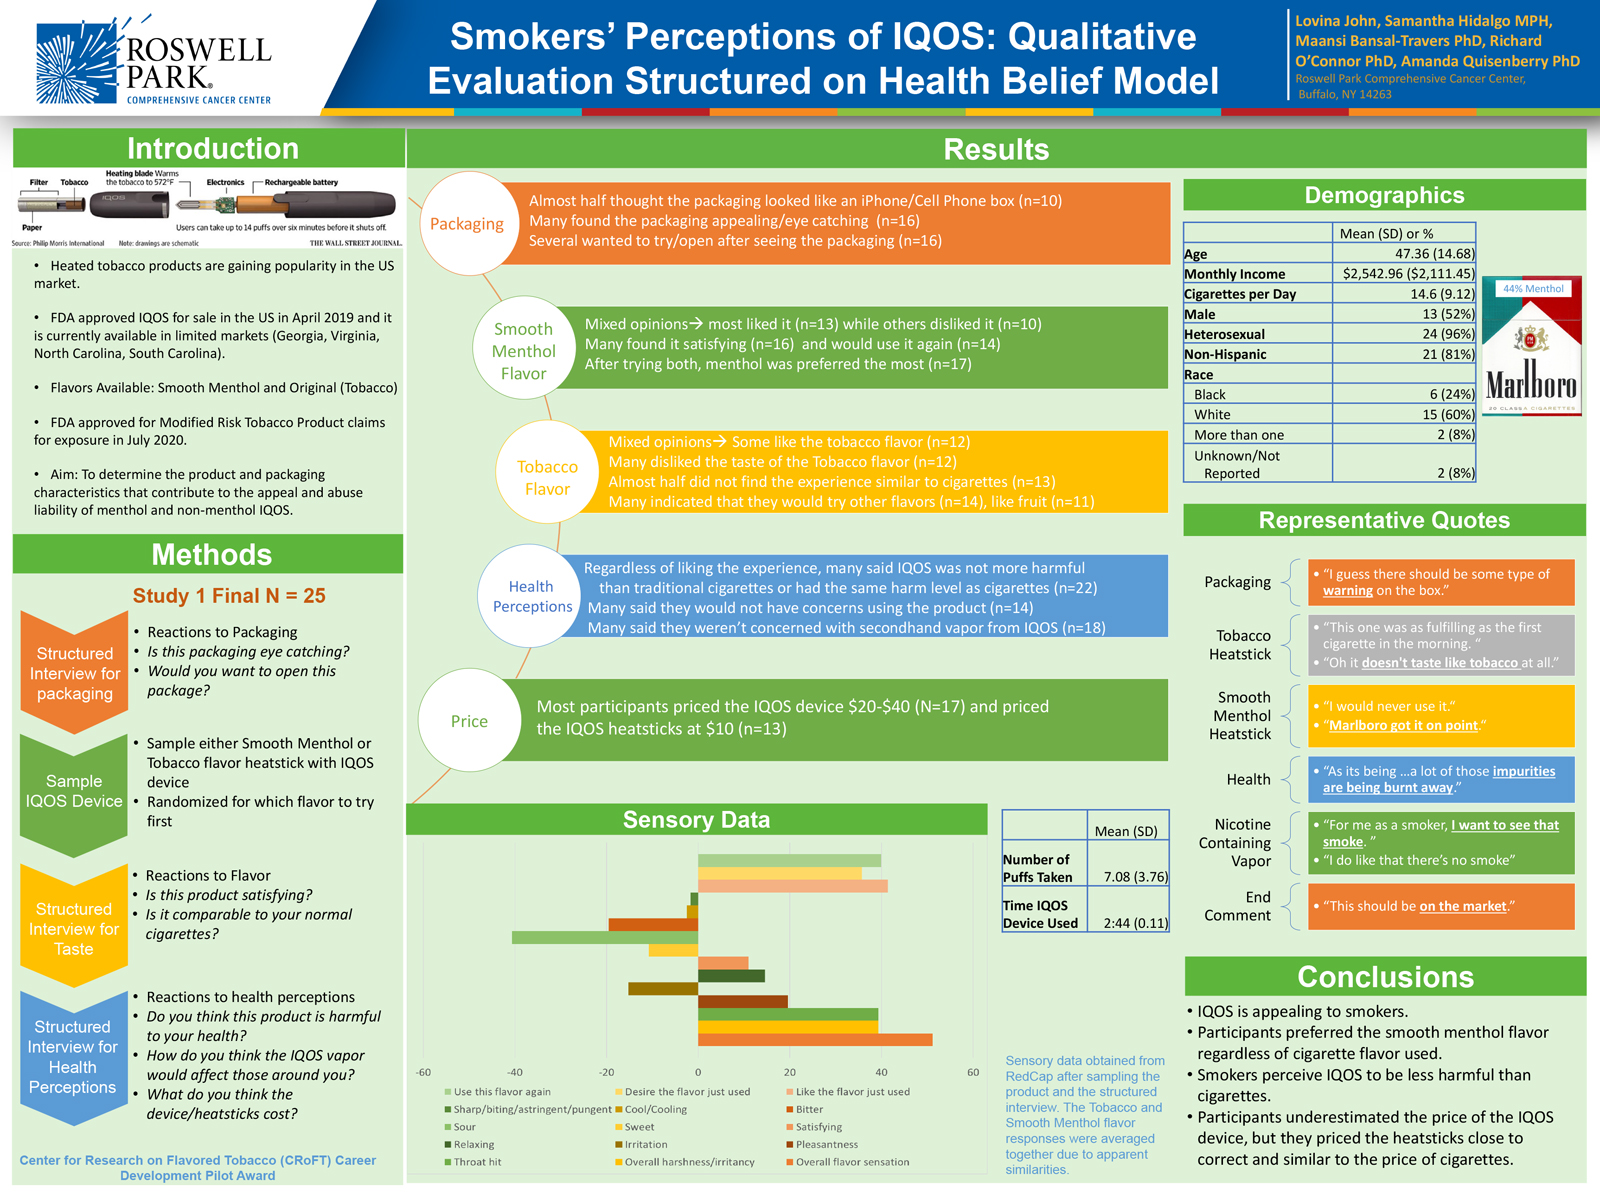 Smokers' Perceptions of IQOS: Qualitative Evaluation Structured on Health Belief Model